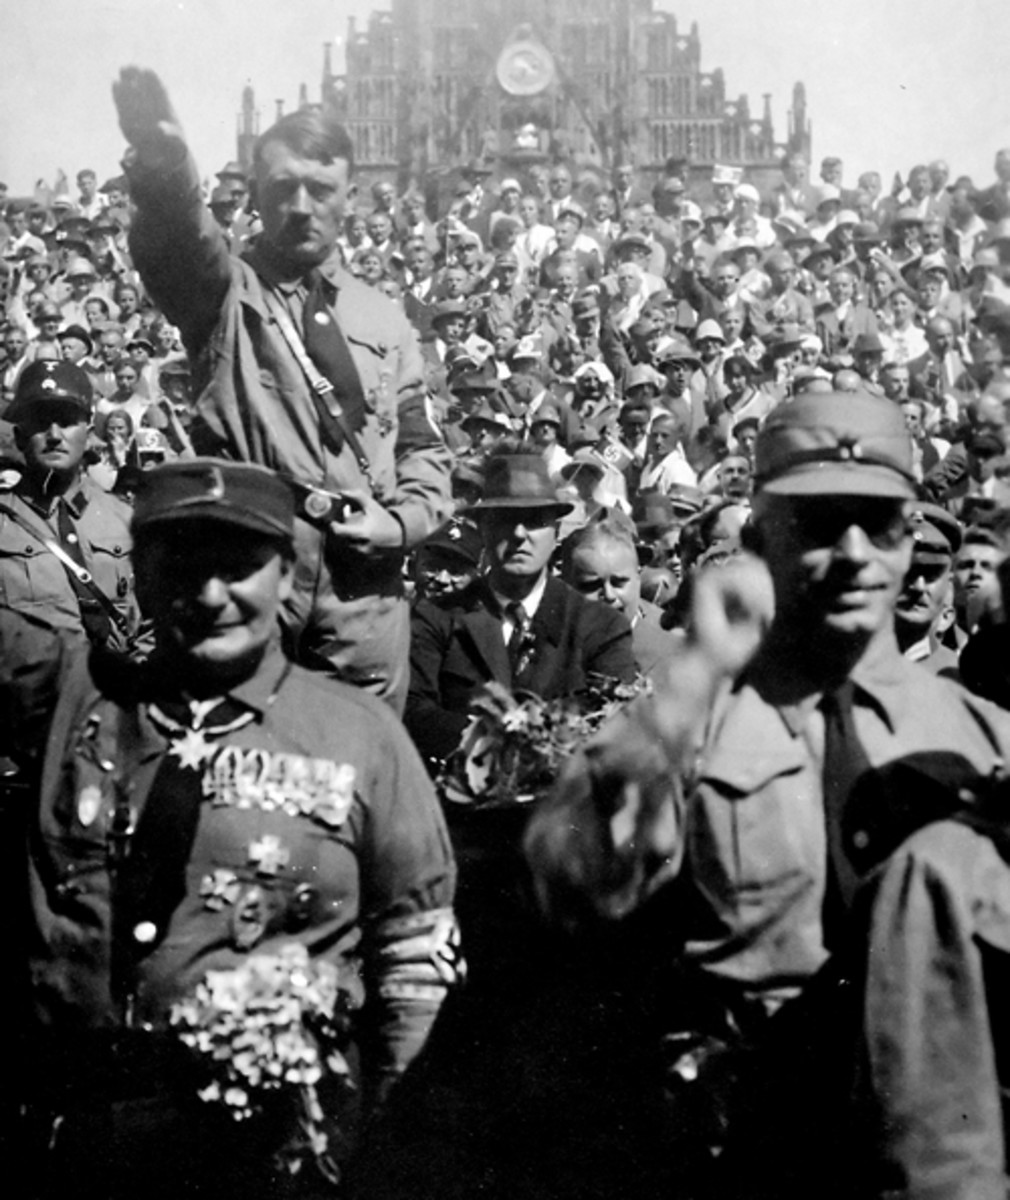 Adolf Hitler raises the Nazi salute behind Herman Goering (left) at an early Third Reich rally.